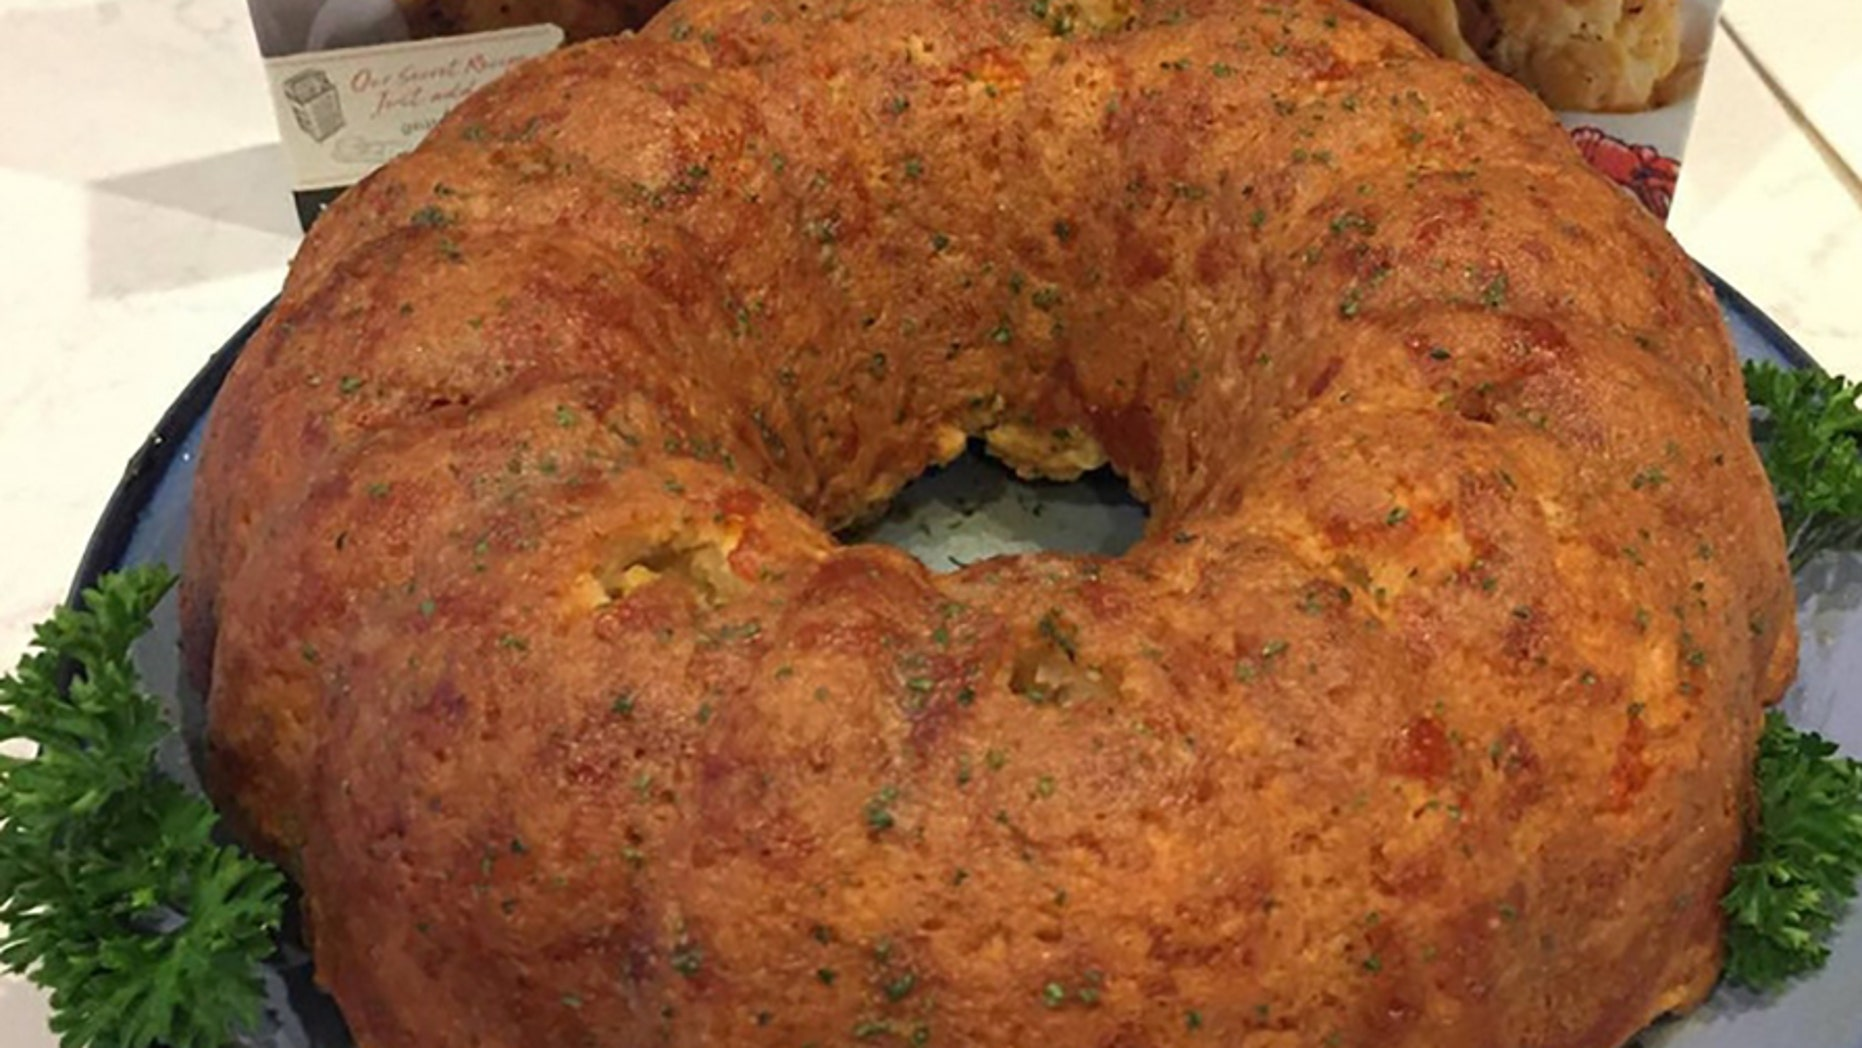 """After a Reddit user's sister left a """"gag gift"""" of Red Lobster's Cheddar Bay Biscuit mix, he bought another box and turned it into a carb-heavy, sodium-rich biscuit bundt cake."""